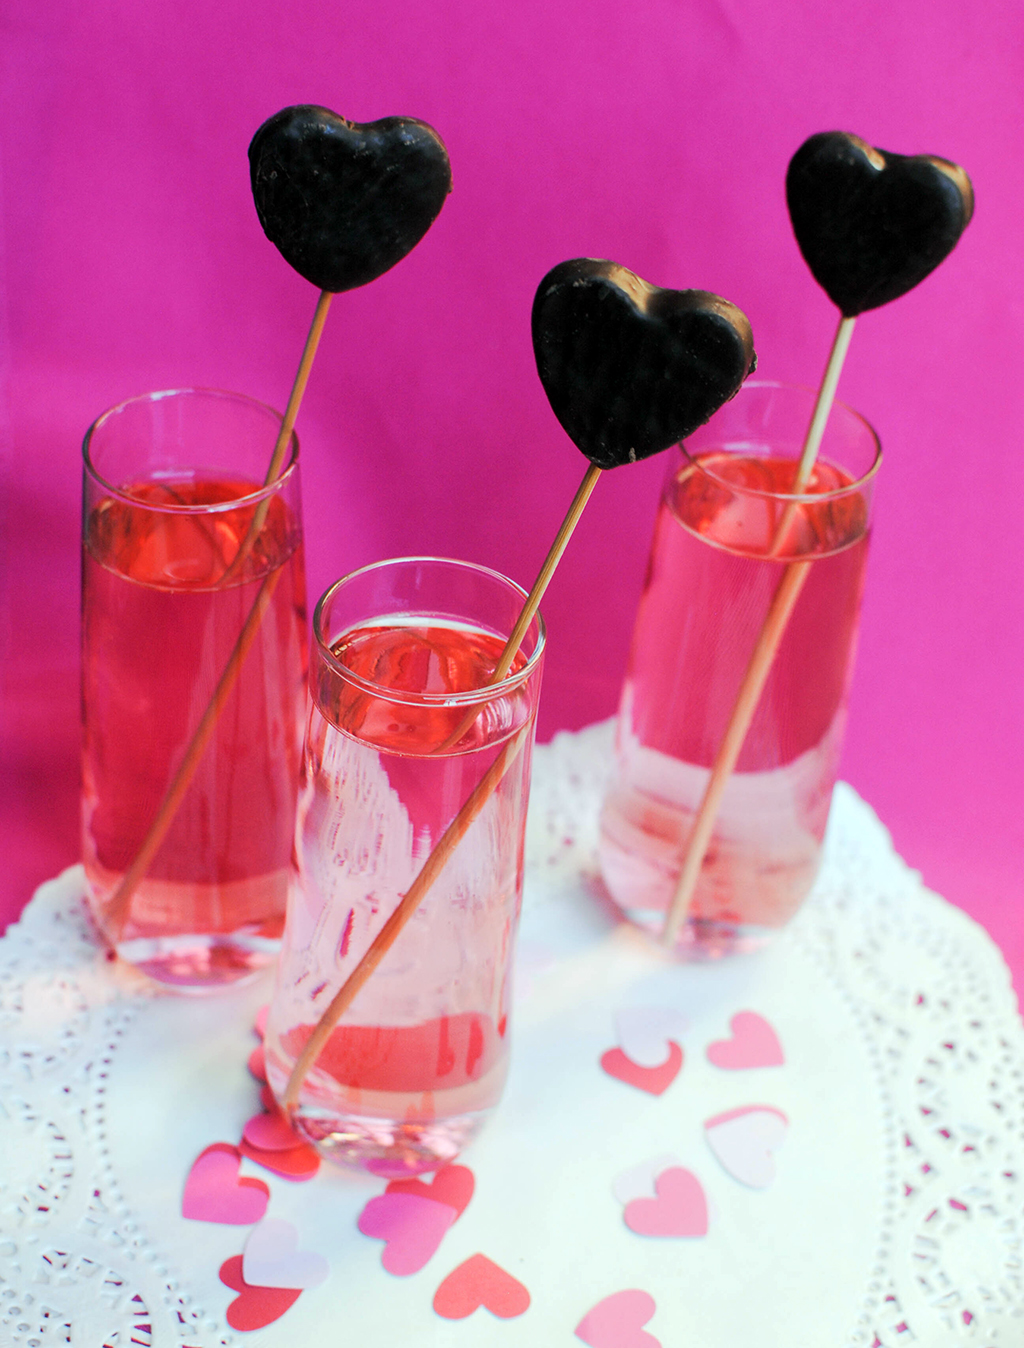 heart candy stir sticks